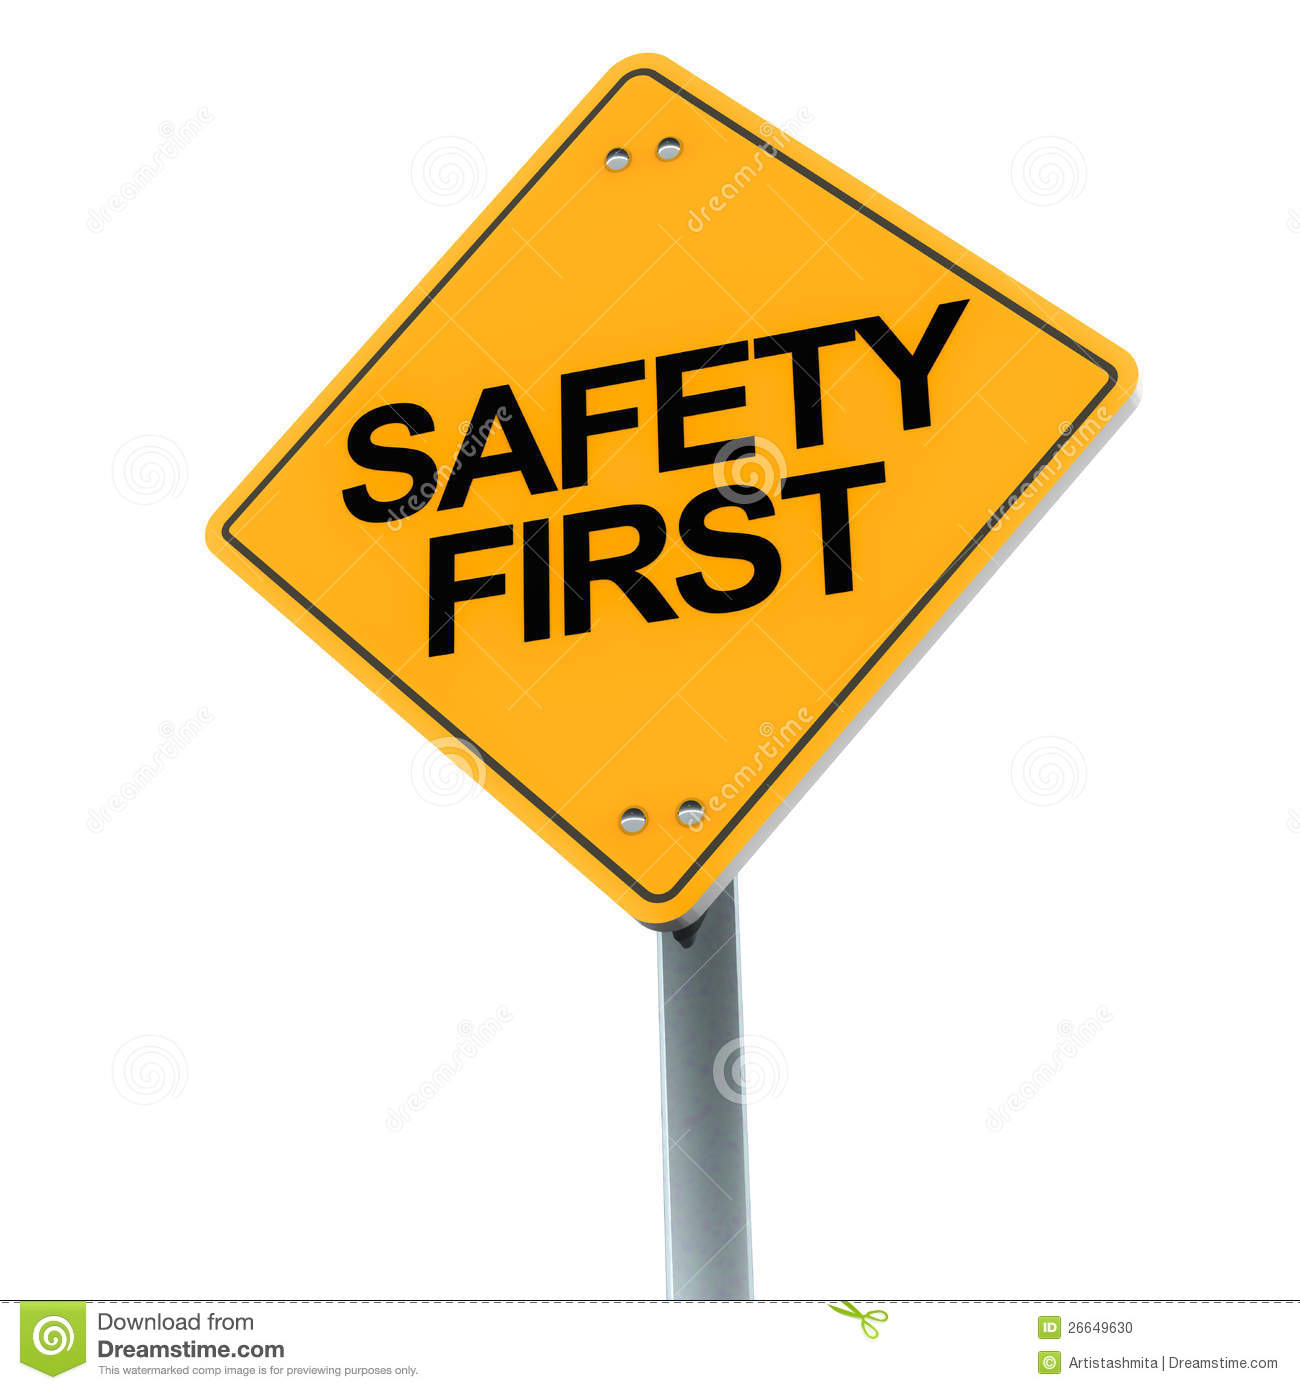 Safety First Road Sign On Clean Background Showing Concern For Safety